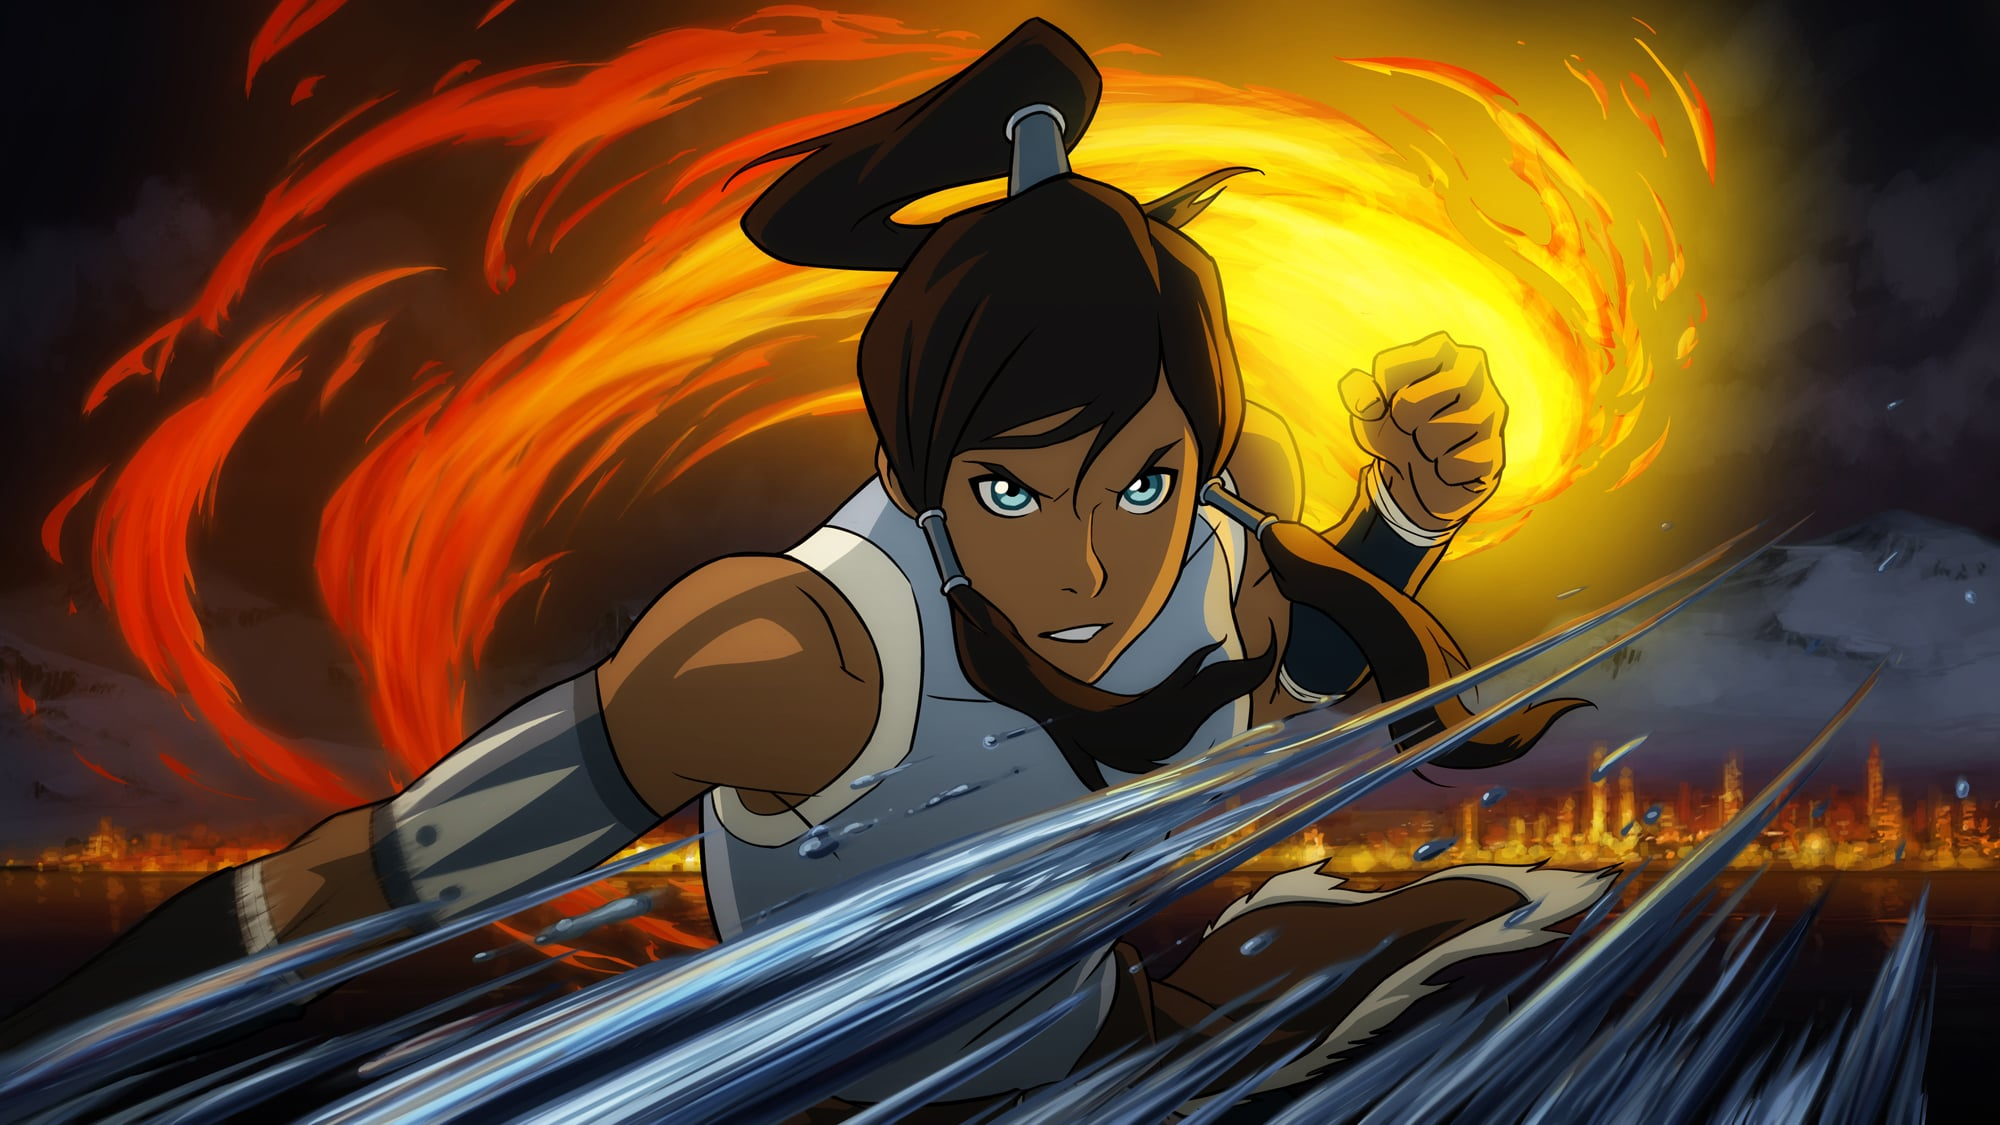 THE LEGEND OF KORRA, Korra, (Season 1, 2012). Nickelodeon / Courtesy: Everett Collection